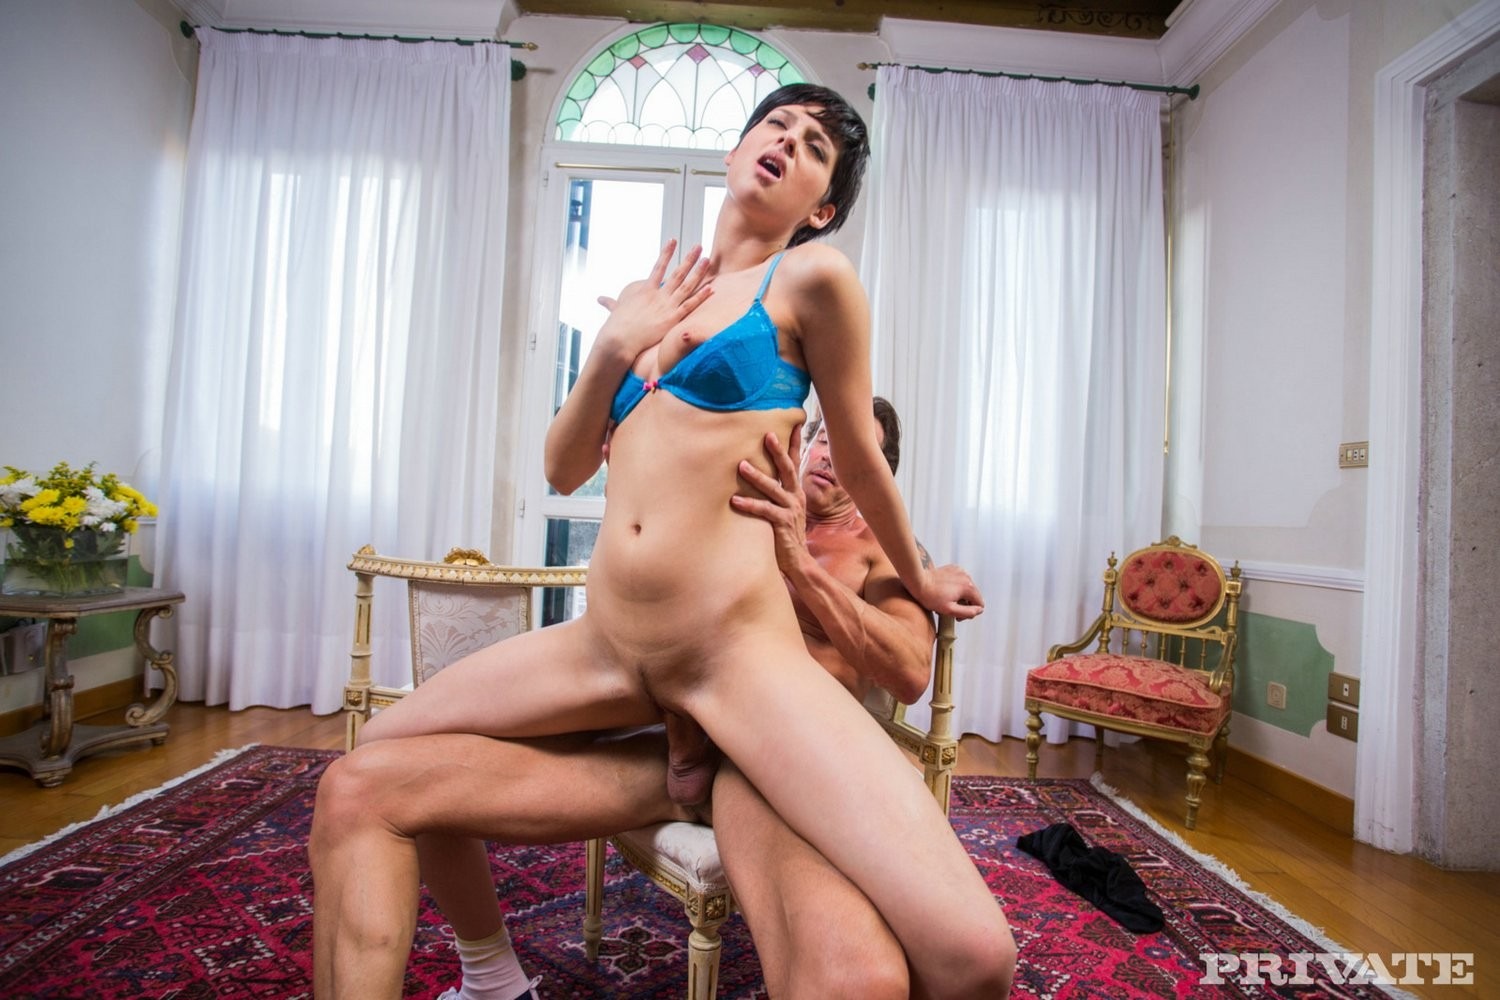 Amateur coco de mal orally fixating and cumong enormous weenie